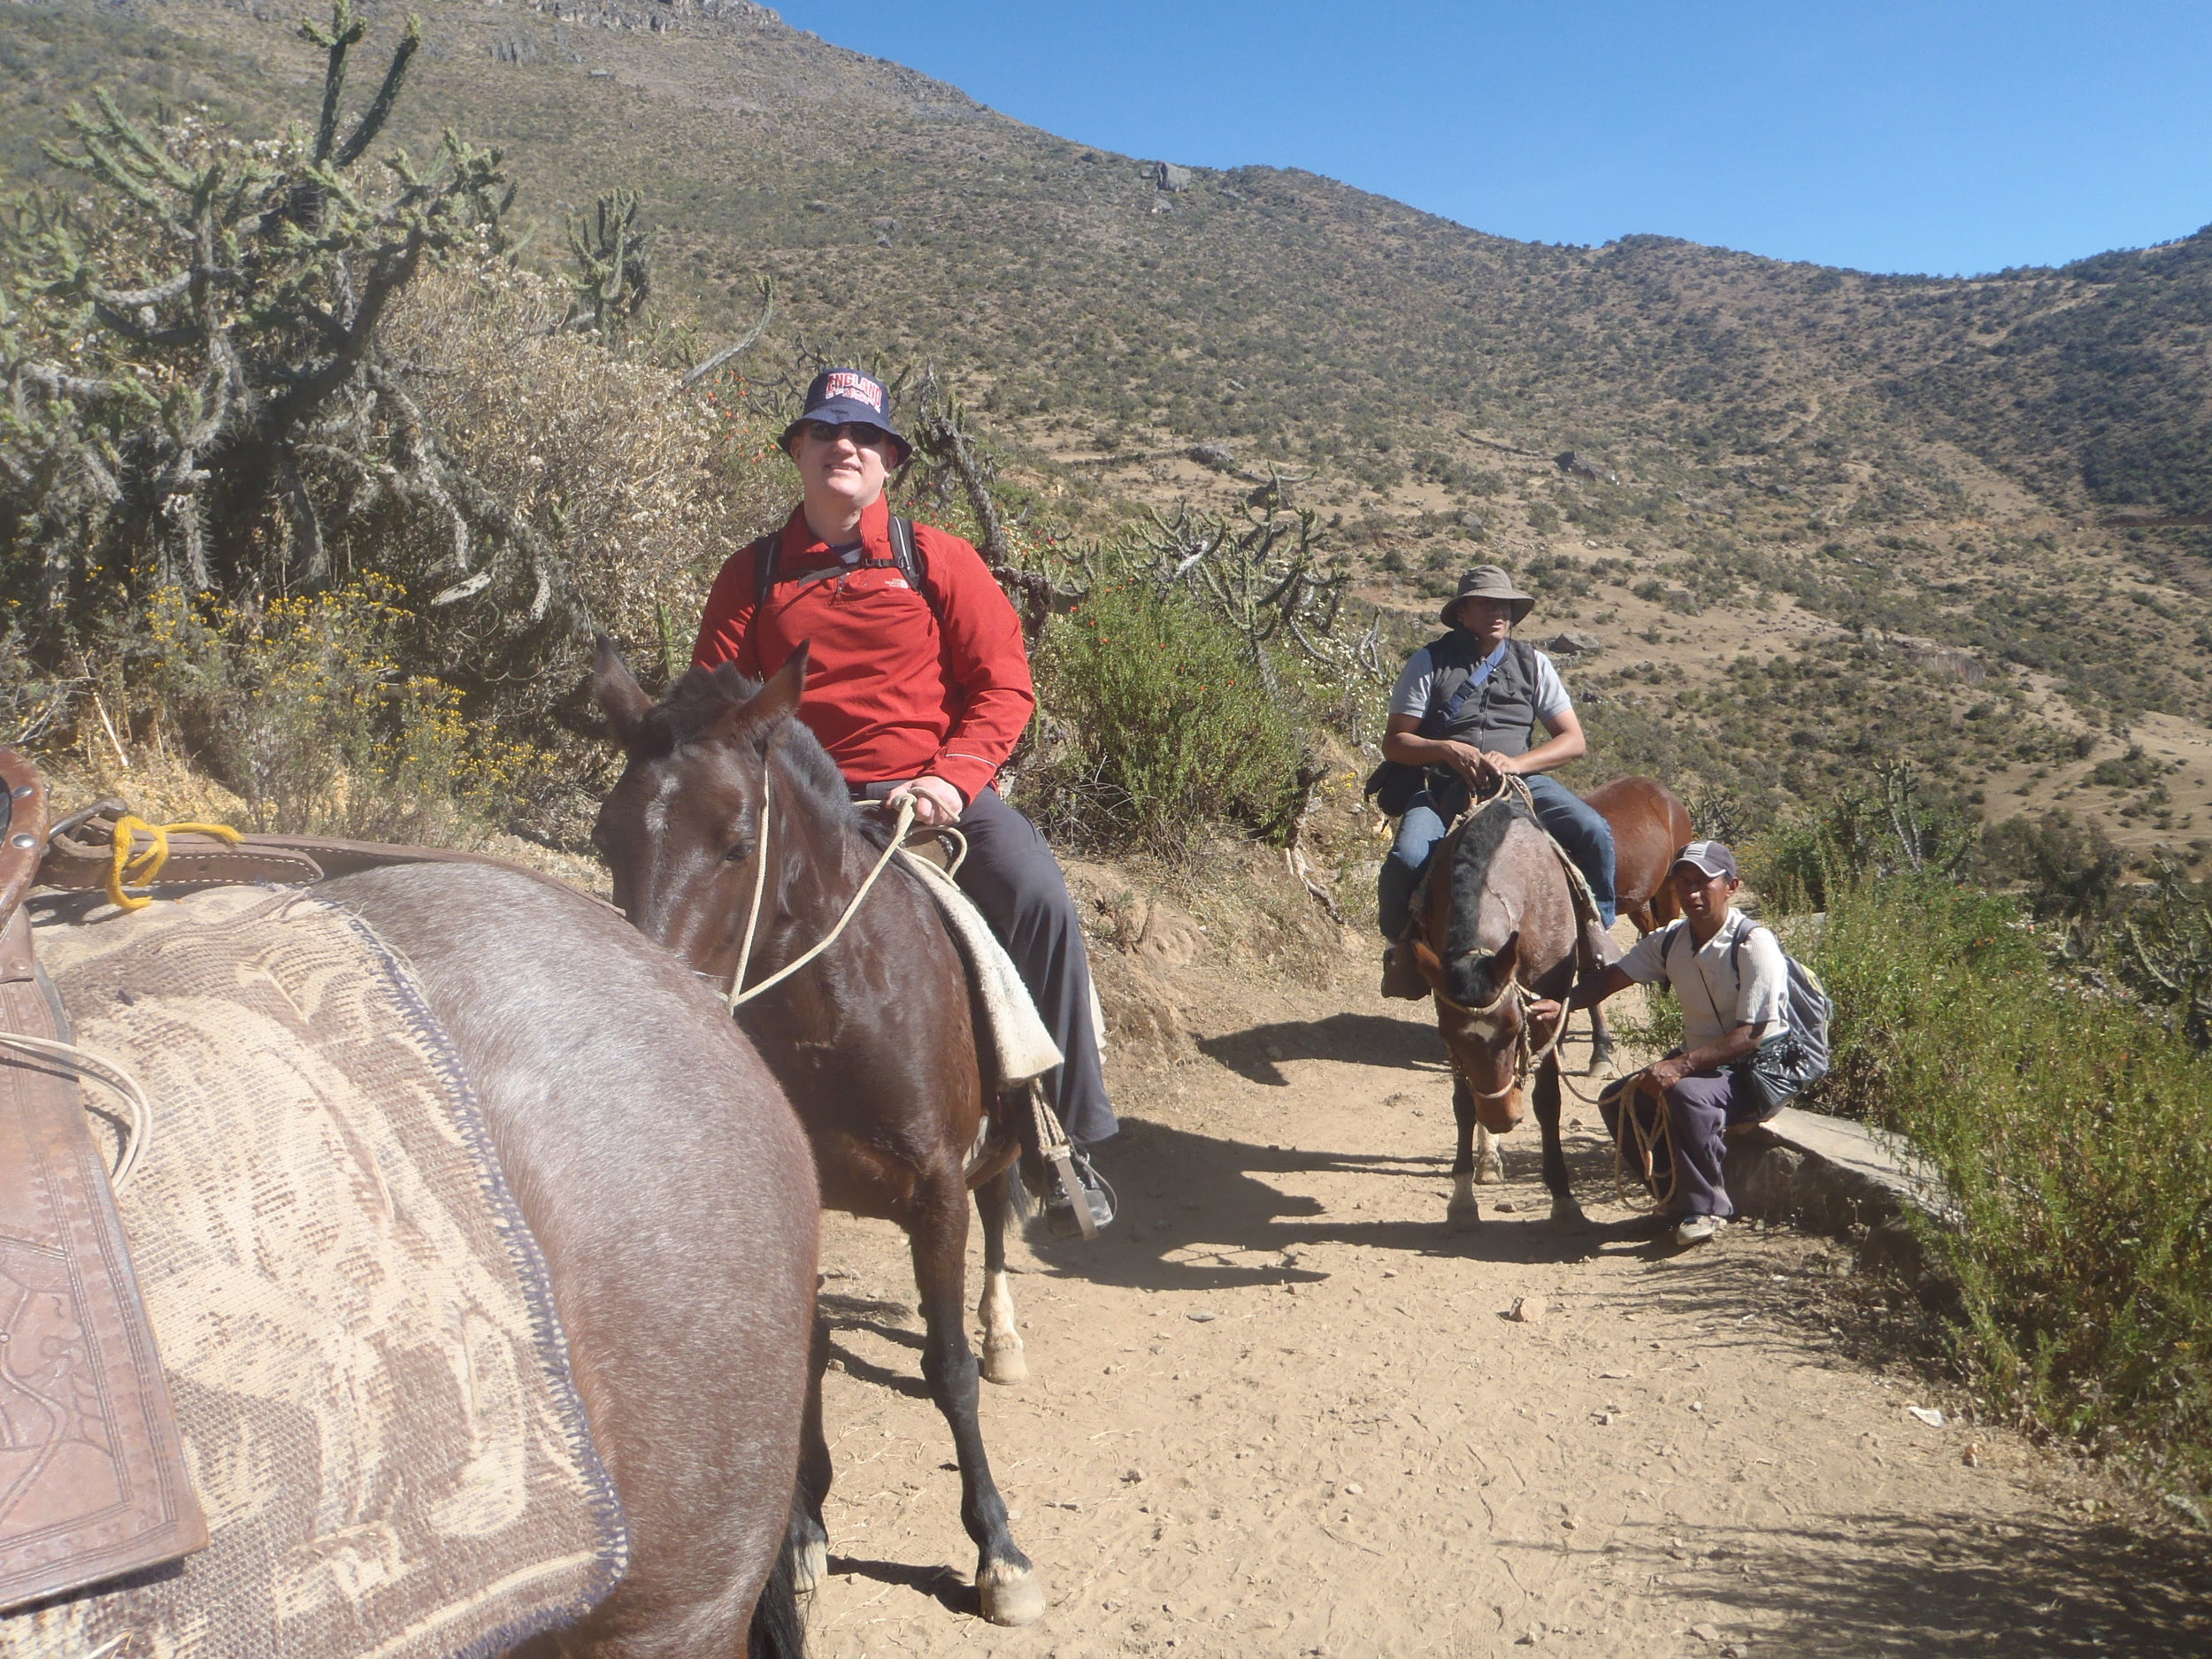 Me on the 'Gas powered' horse & Jose on the horse behind.